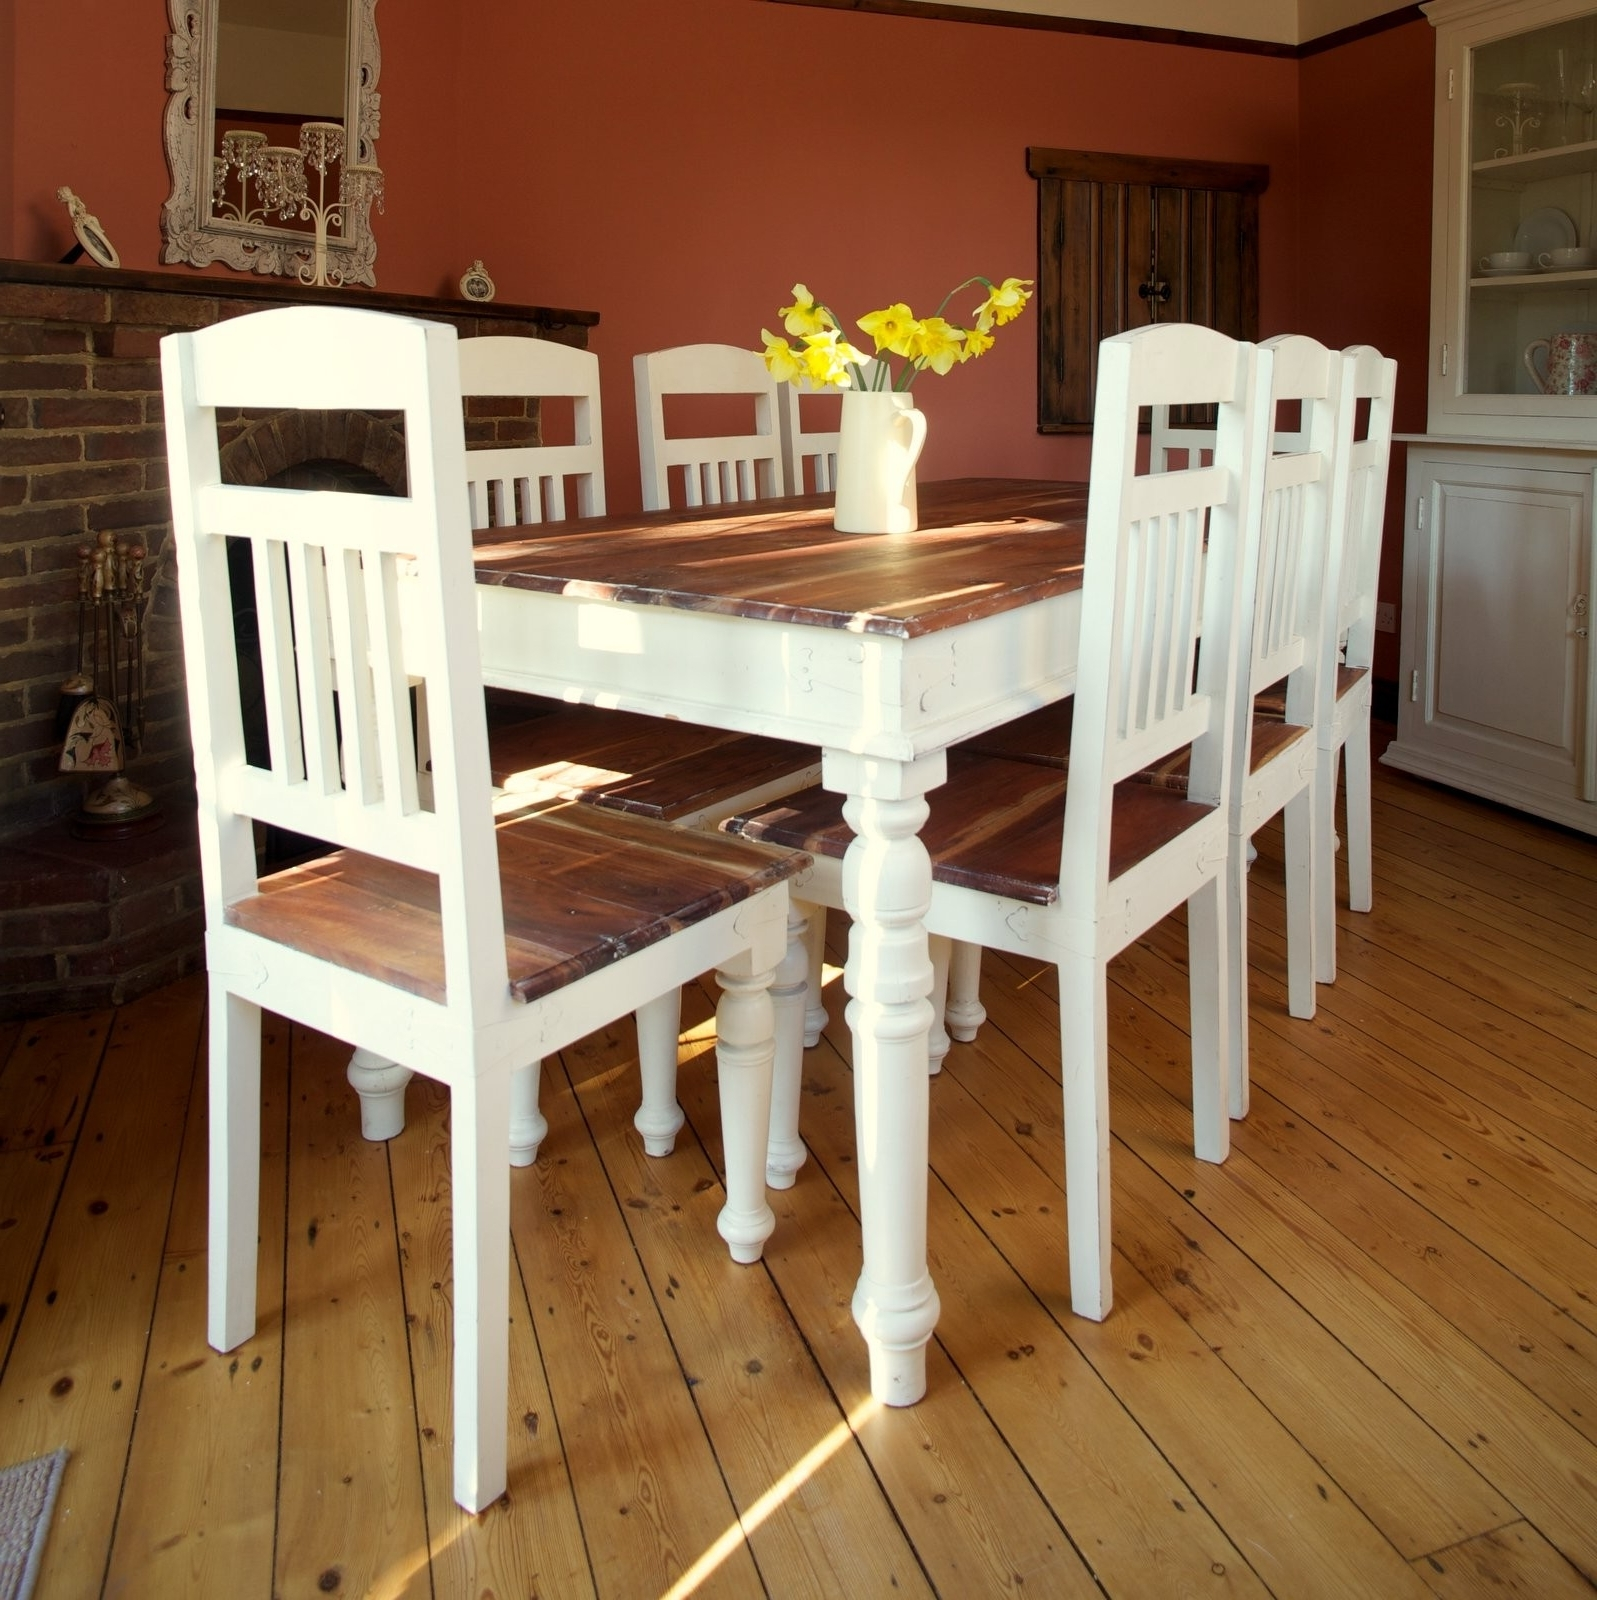 Most Recent Shabby Chic Cream Dining Tables And Chairs With Regard To Incredible Ideas Shabby Chic Cream Dining Table And Chairs (View 19 of 25)